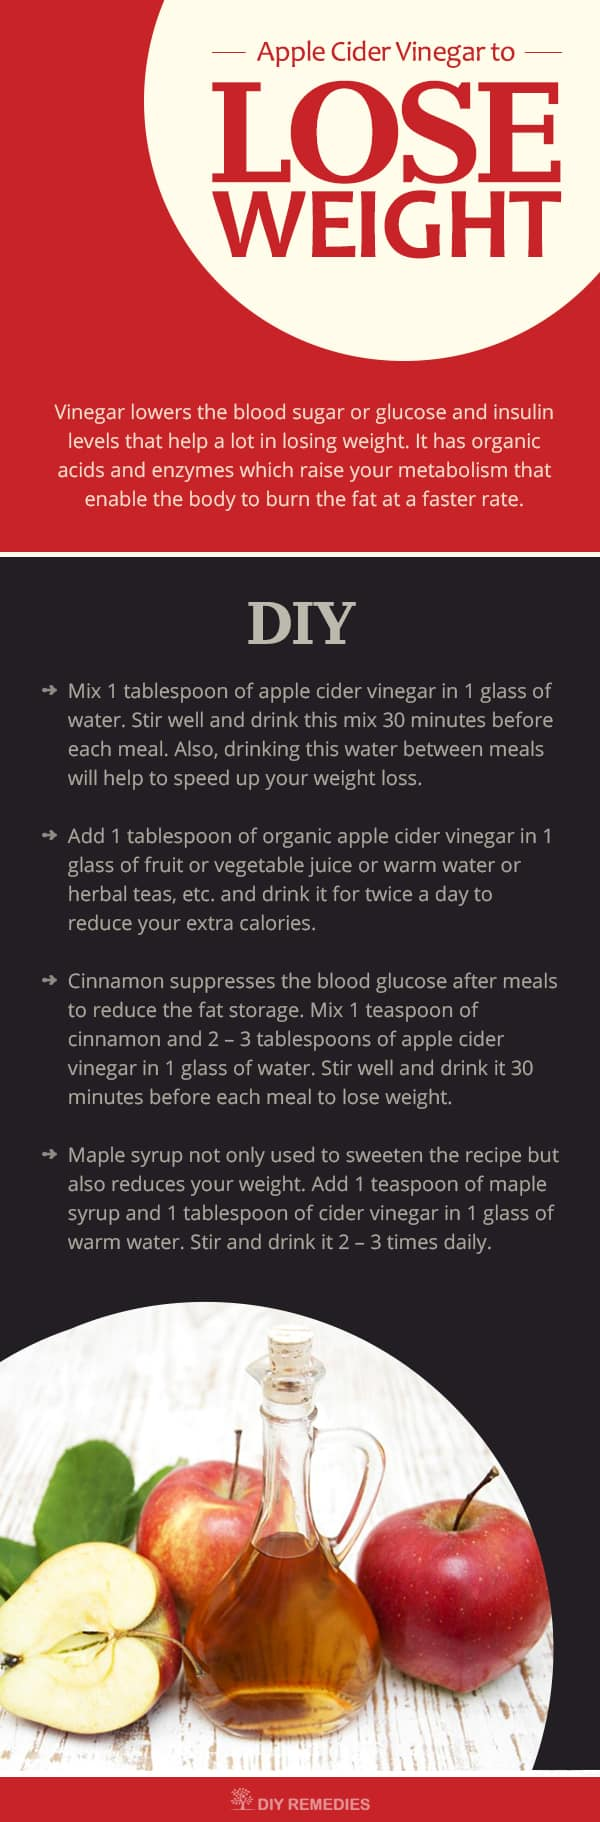 How to Lose Weight with Apple Cider Vinegar